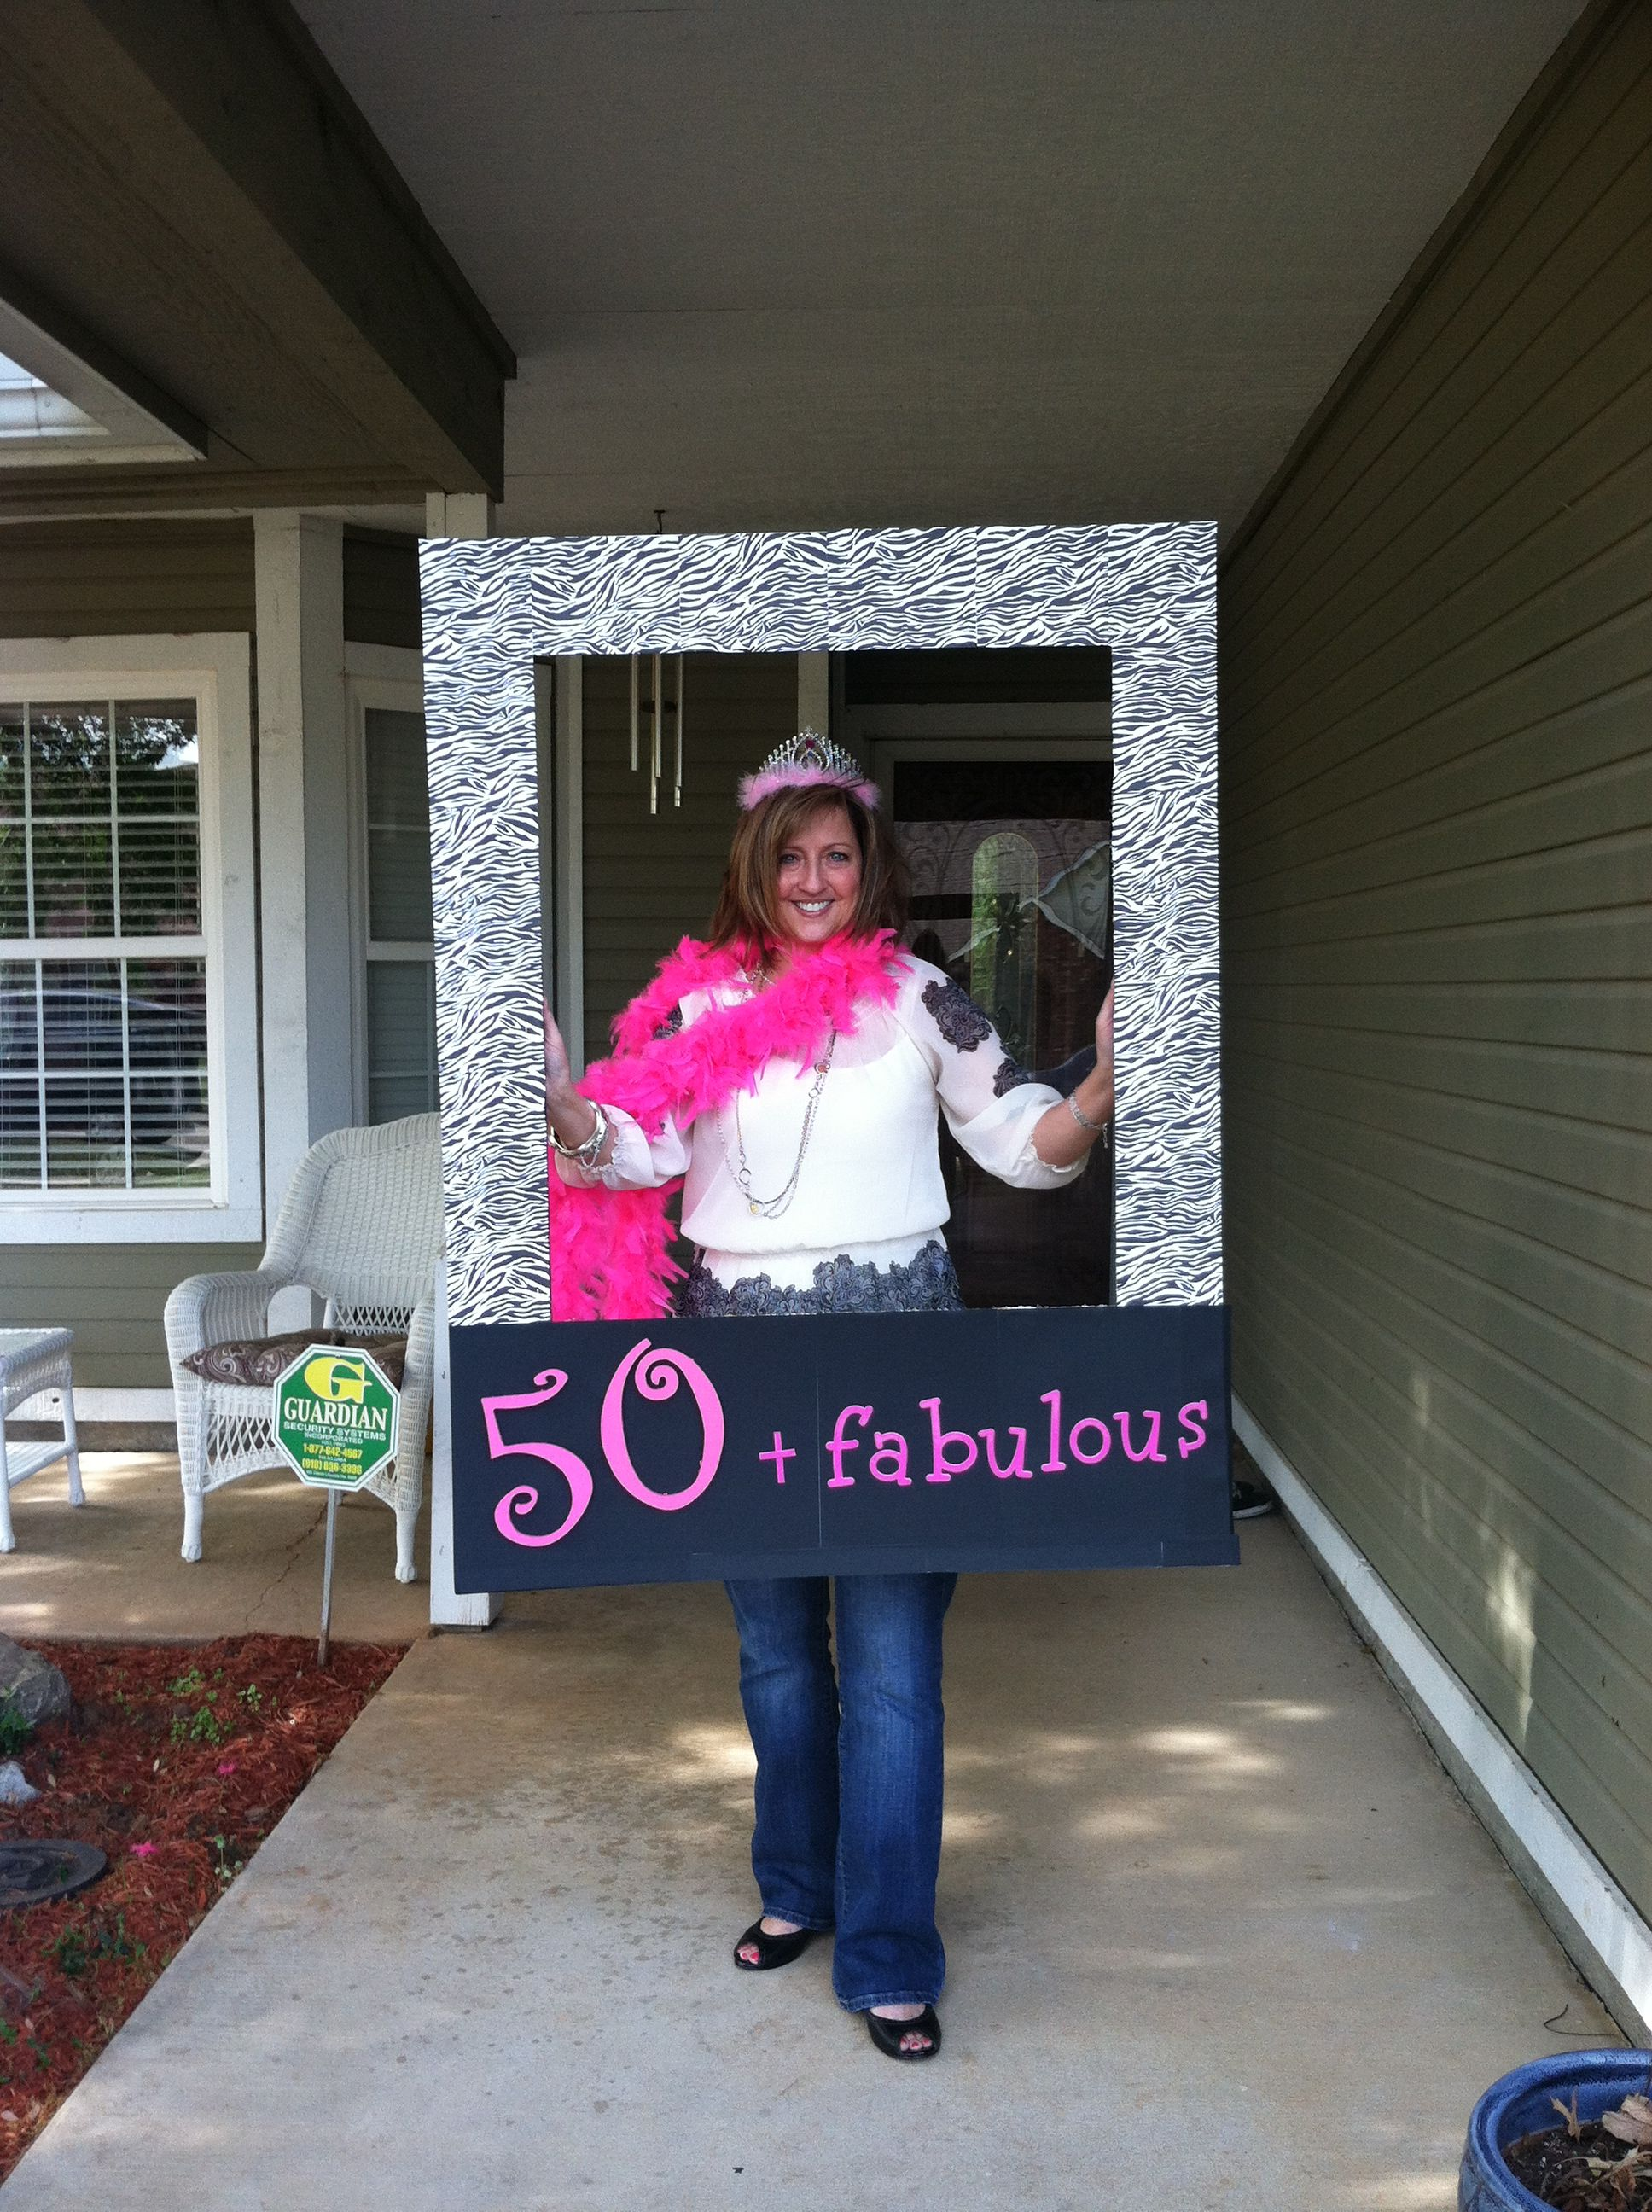 Fun 50th birthday photo prop for 50 fabulous party 50 for 50th birthday decoration ideas for women